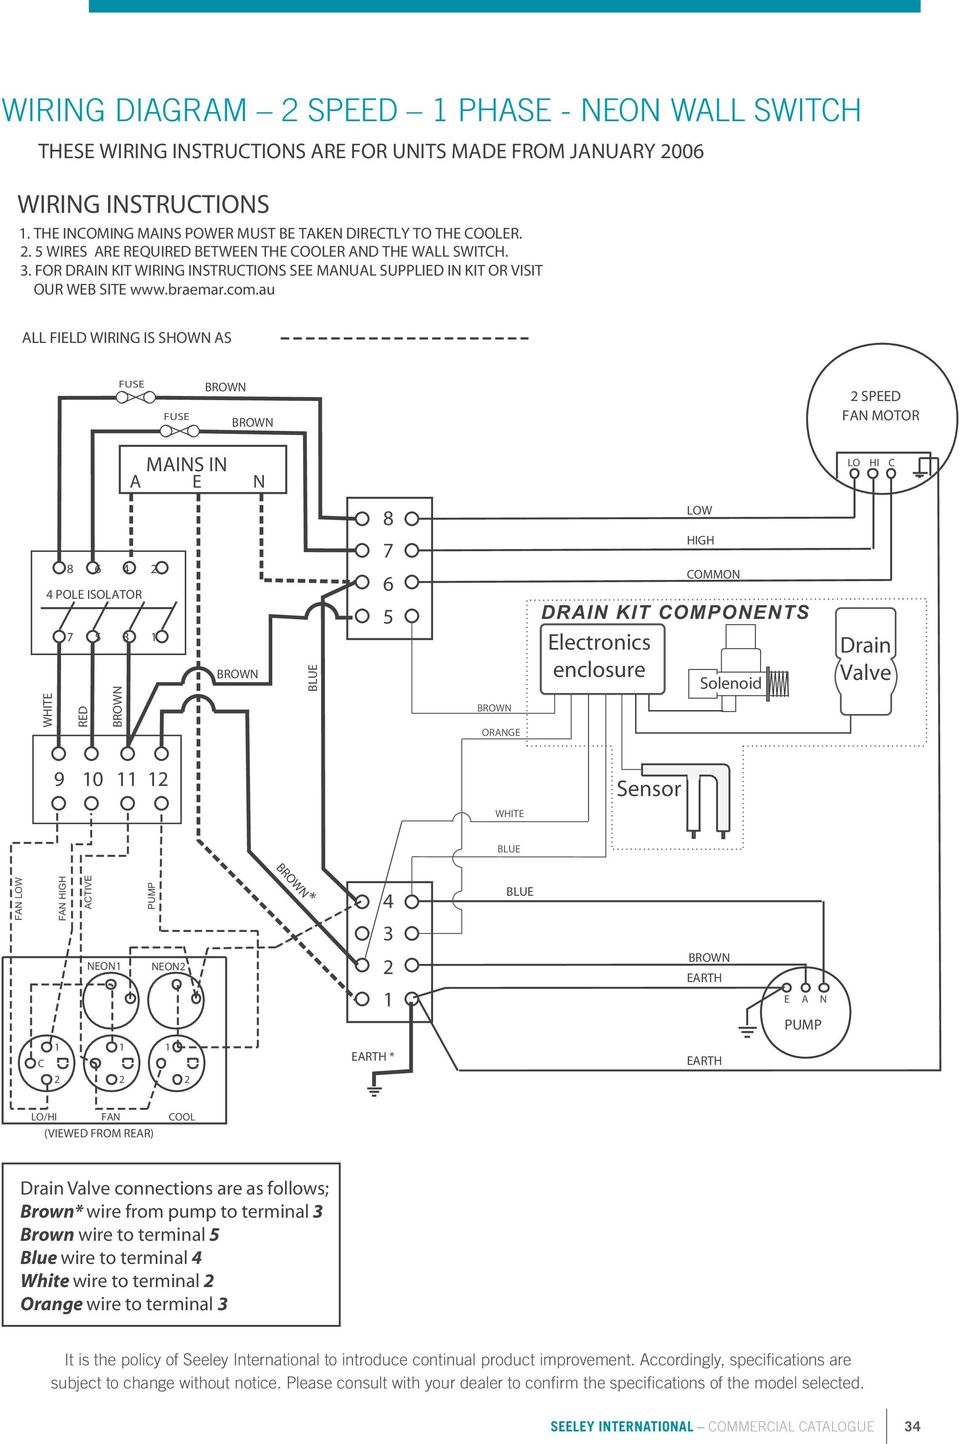 VARIABLE SD CONTROL CPMD CONNECTIONS - PDF on